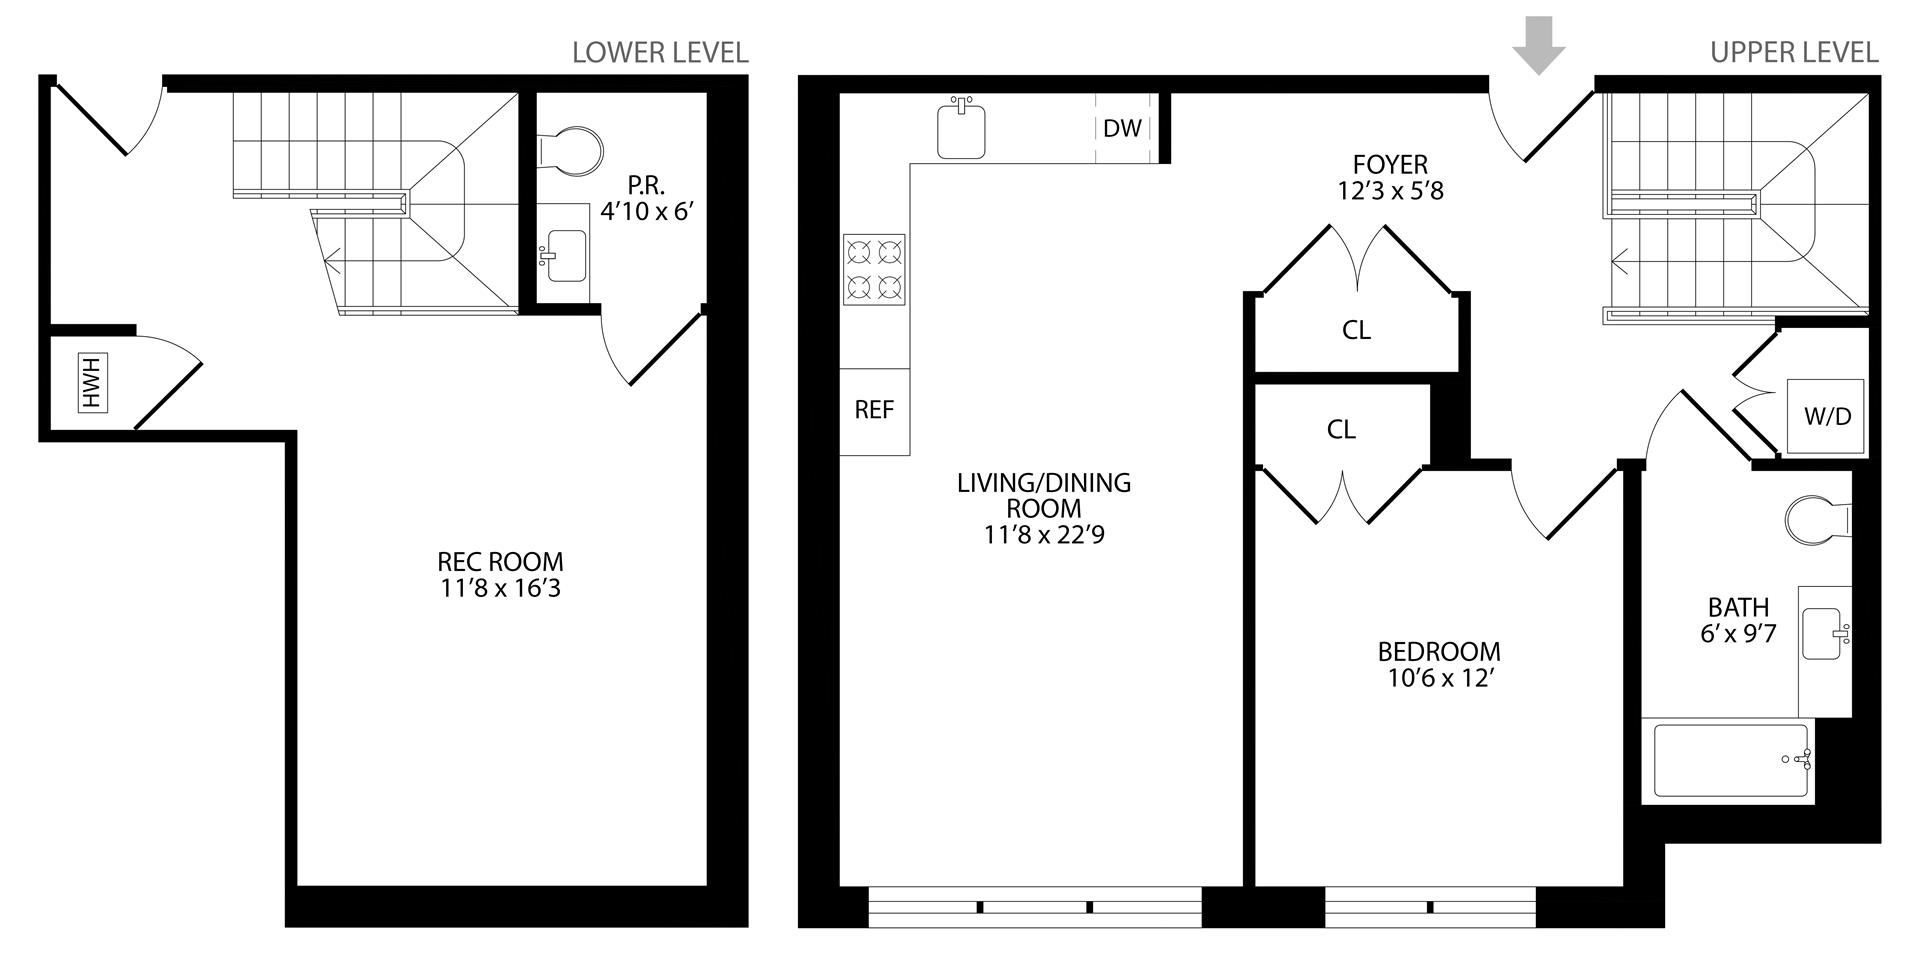 Floor plan of 203 Quincy St, 1A - Bedford - Stuyvesant, New York